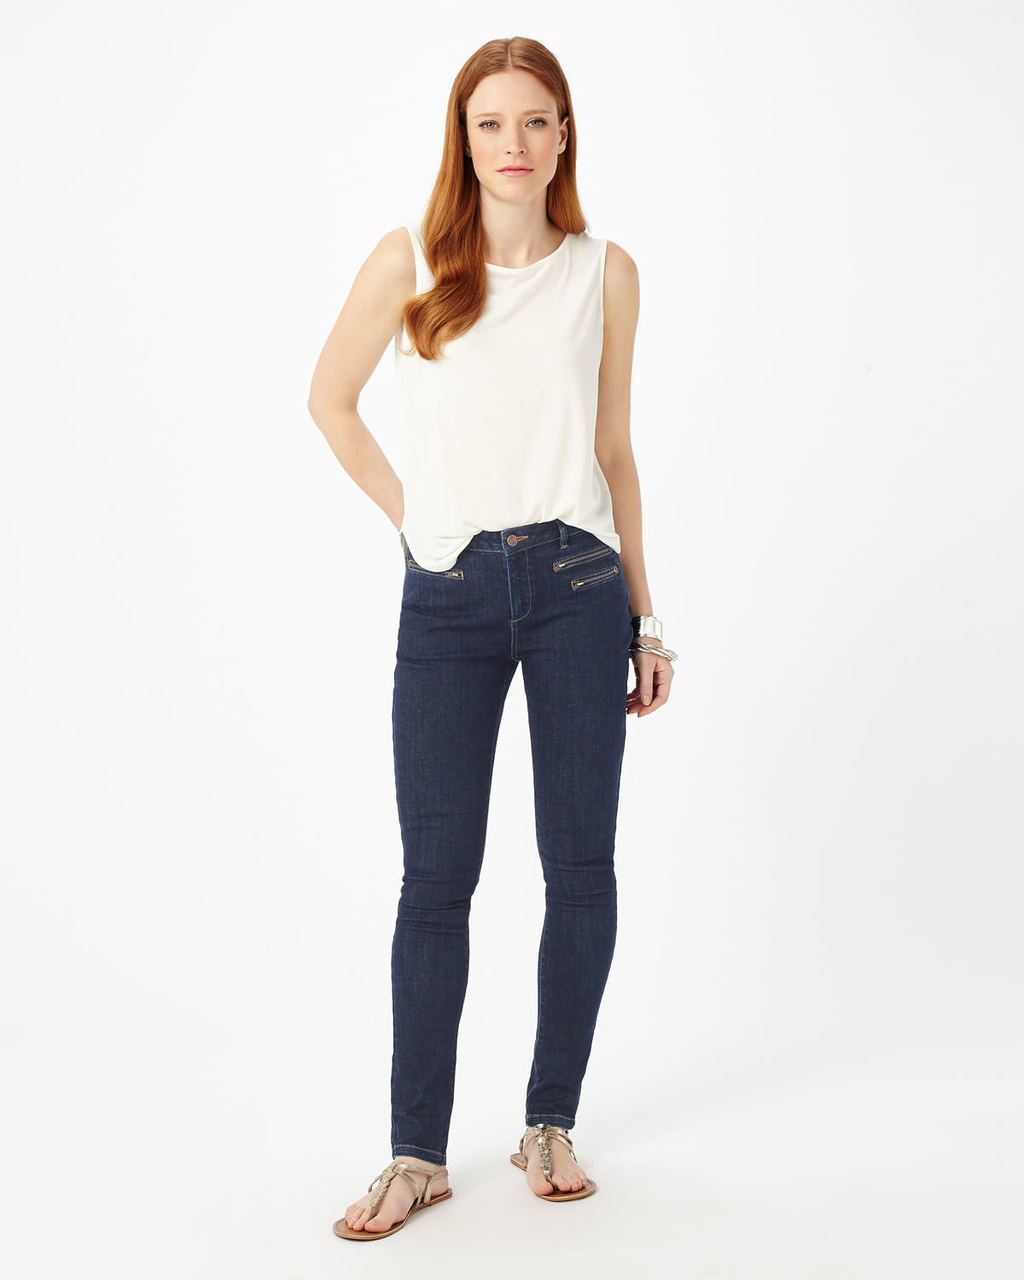 Victoria Triple Zip Jean - style: skinny leg; length: standard; pattern: plain; pocket detail: traditional 5 pocket; waist: mid/regular rise; predominant colour: navy; occasions: casual, evening; fibres: cotton - stretch; jeans detail: dark wash; texture group: denim; pattern type: fabric; season: s/s 2016; wardrobe: basic